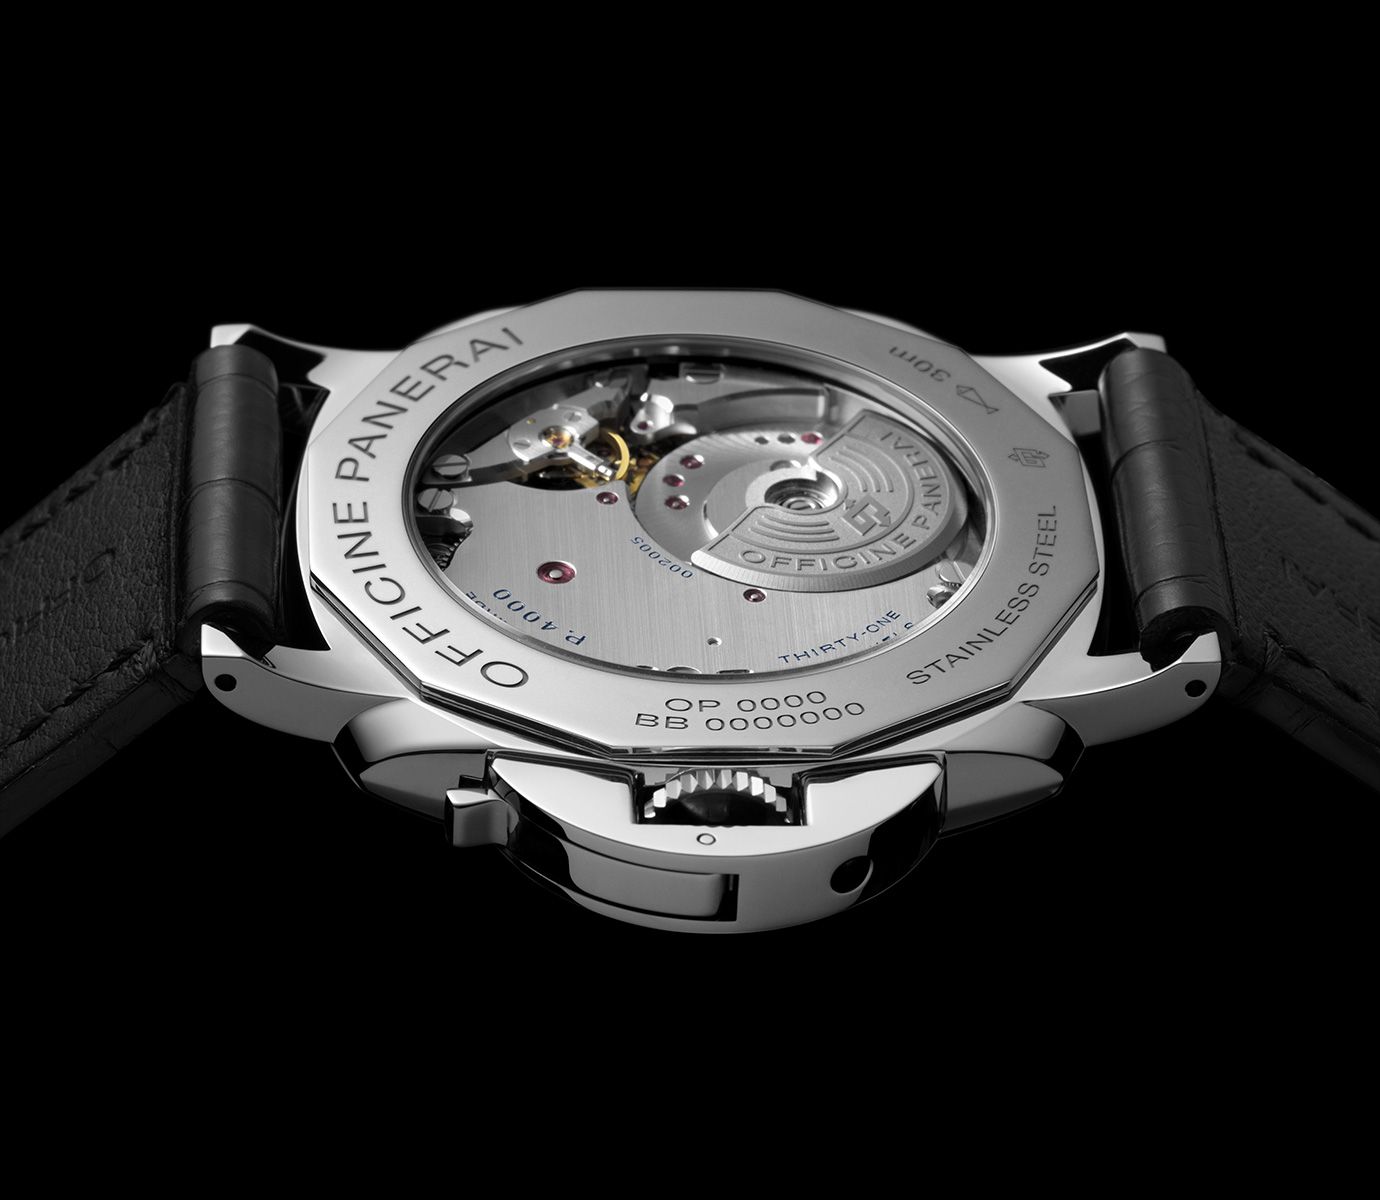 Panerai-Luminor-Due-3-Days-Automatic-Acciaio-45-mm-5-Horasyminutos